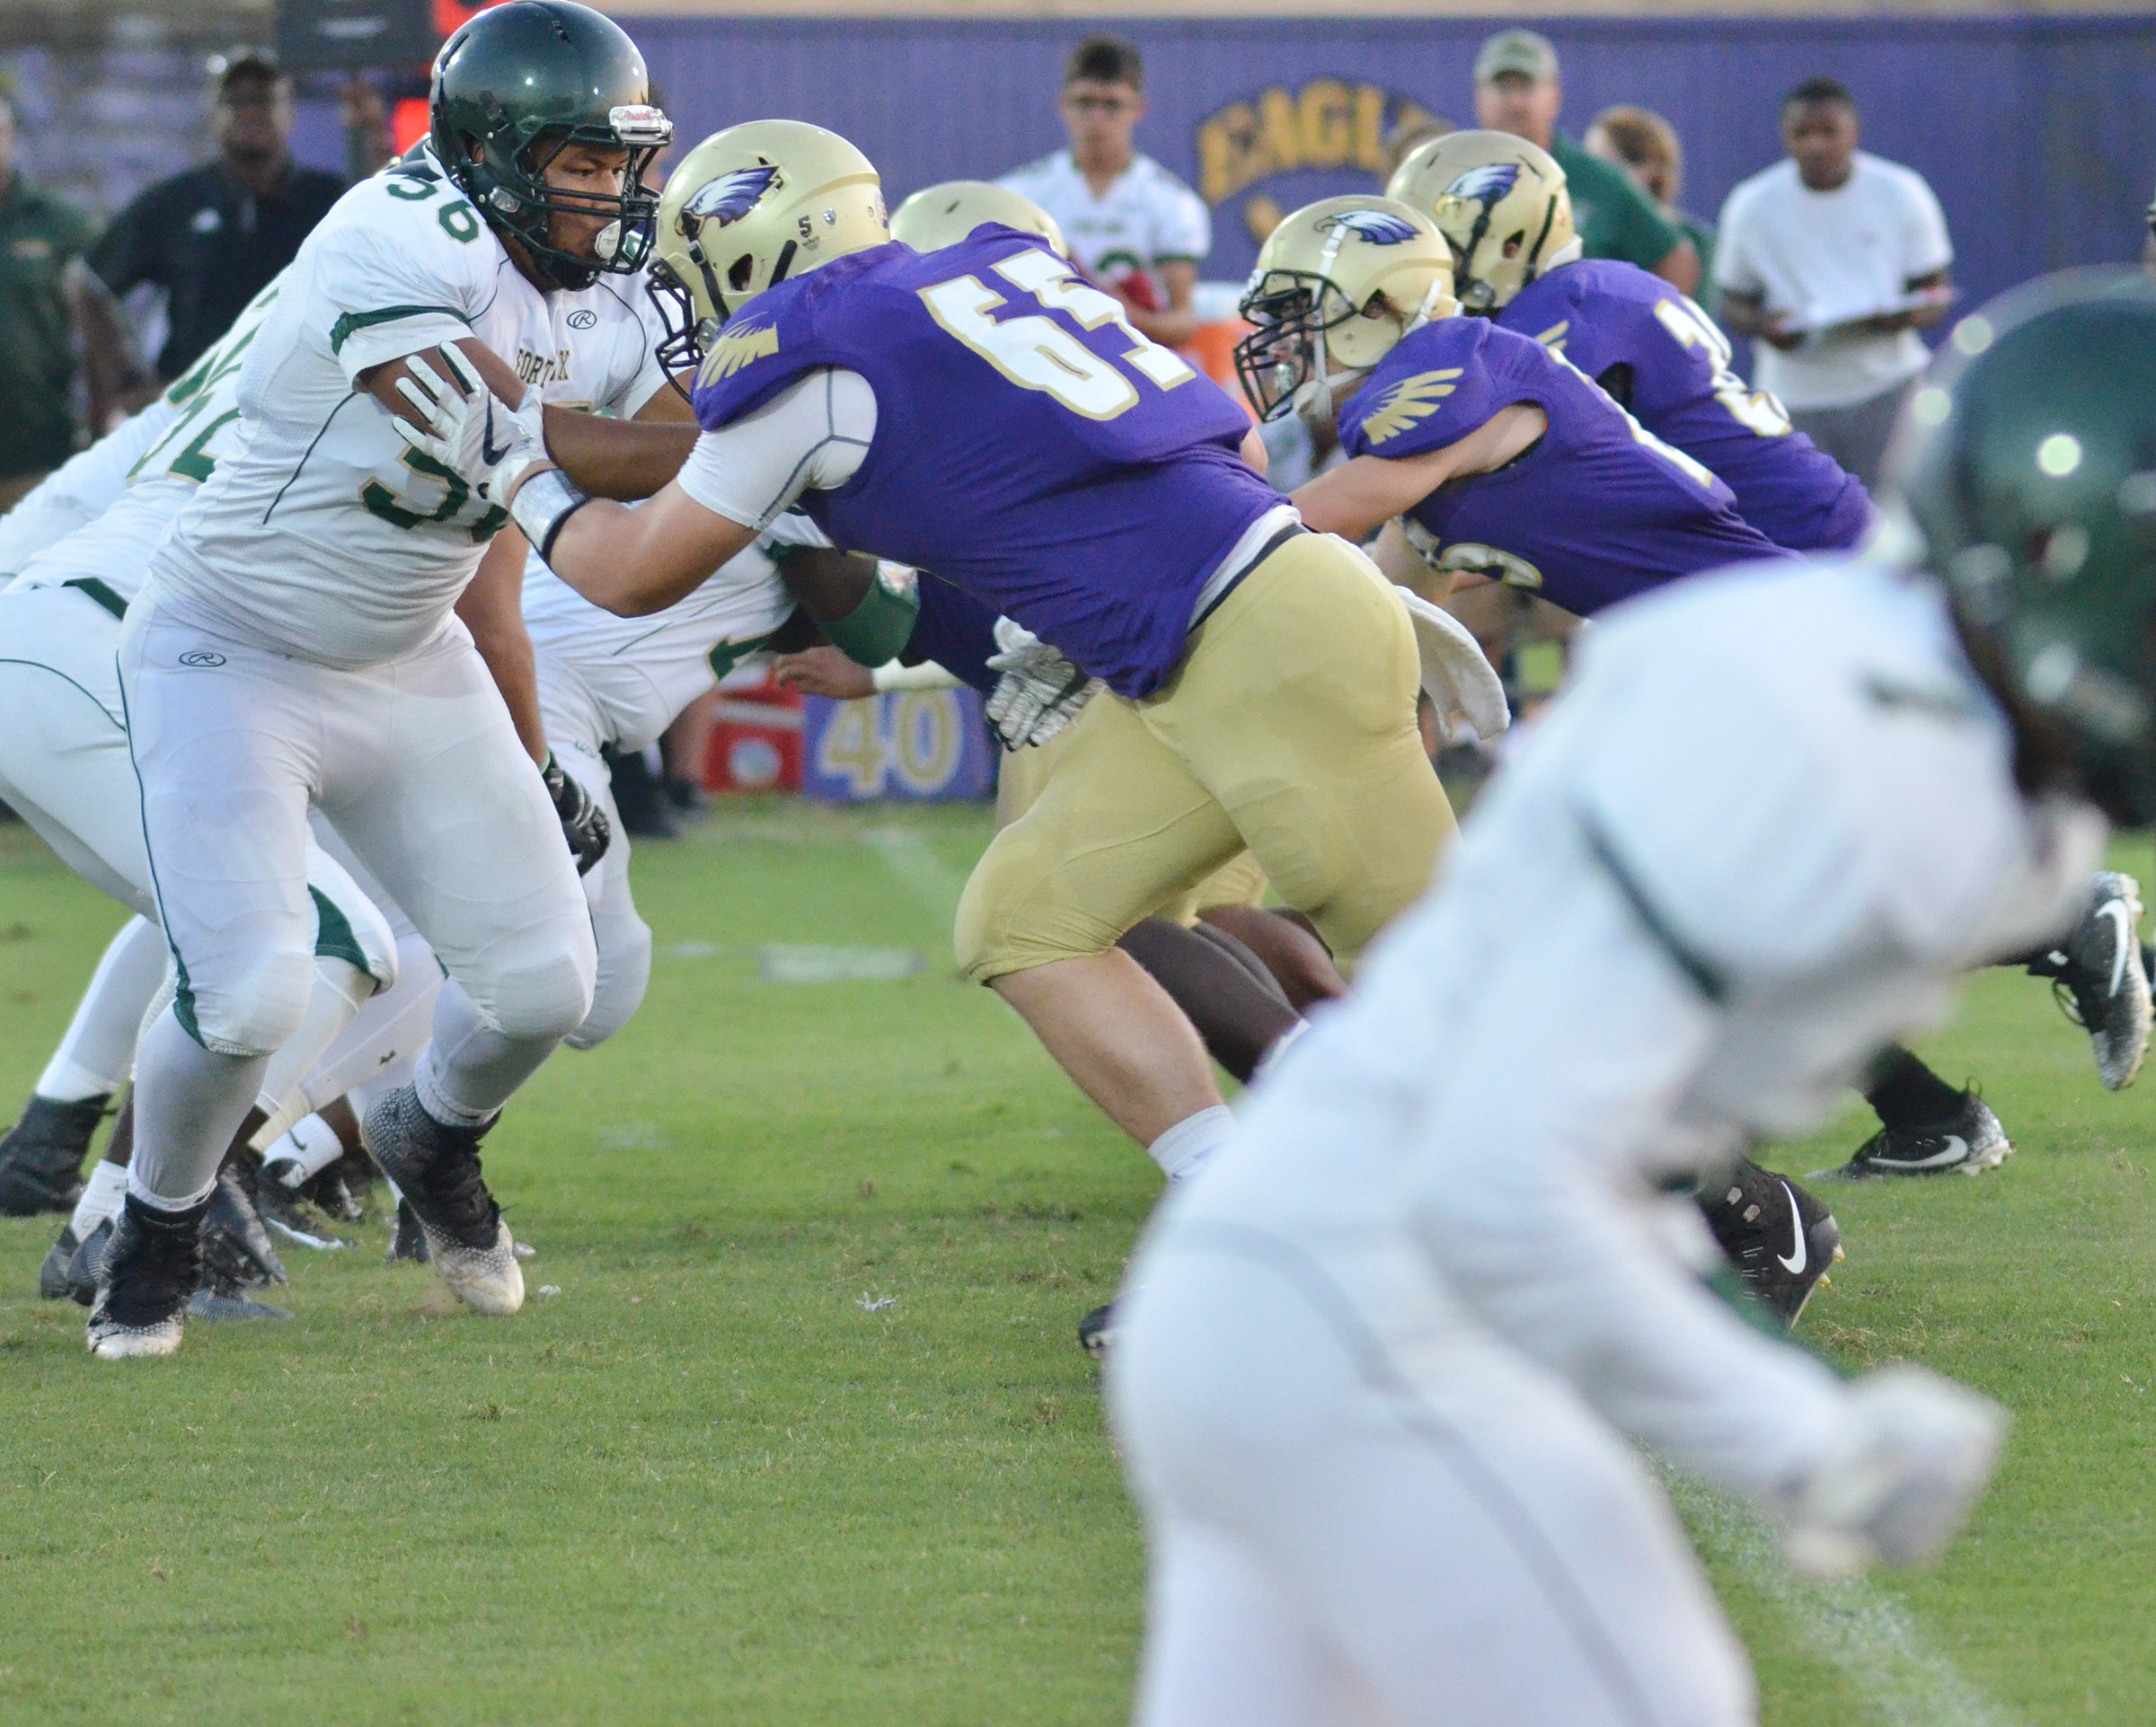 CHS junior Lane Bottoms leads his teammates as they tackle.